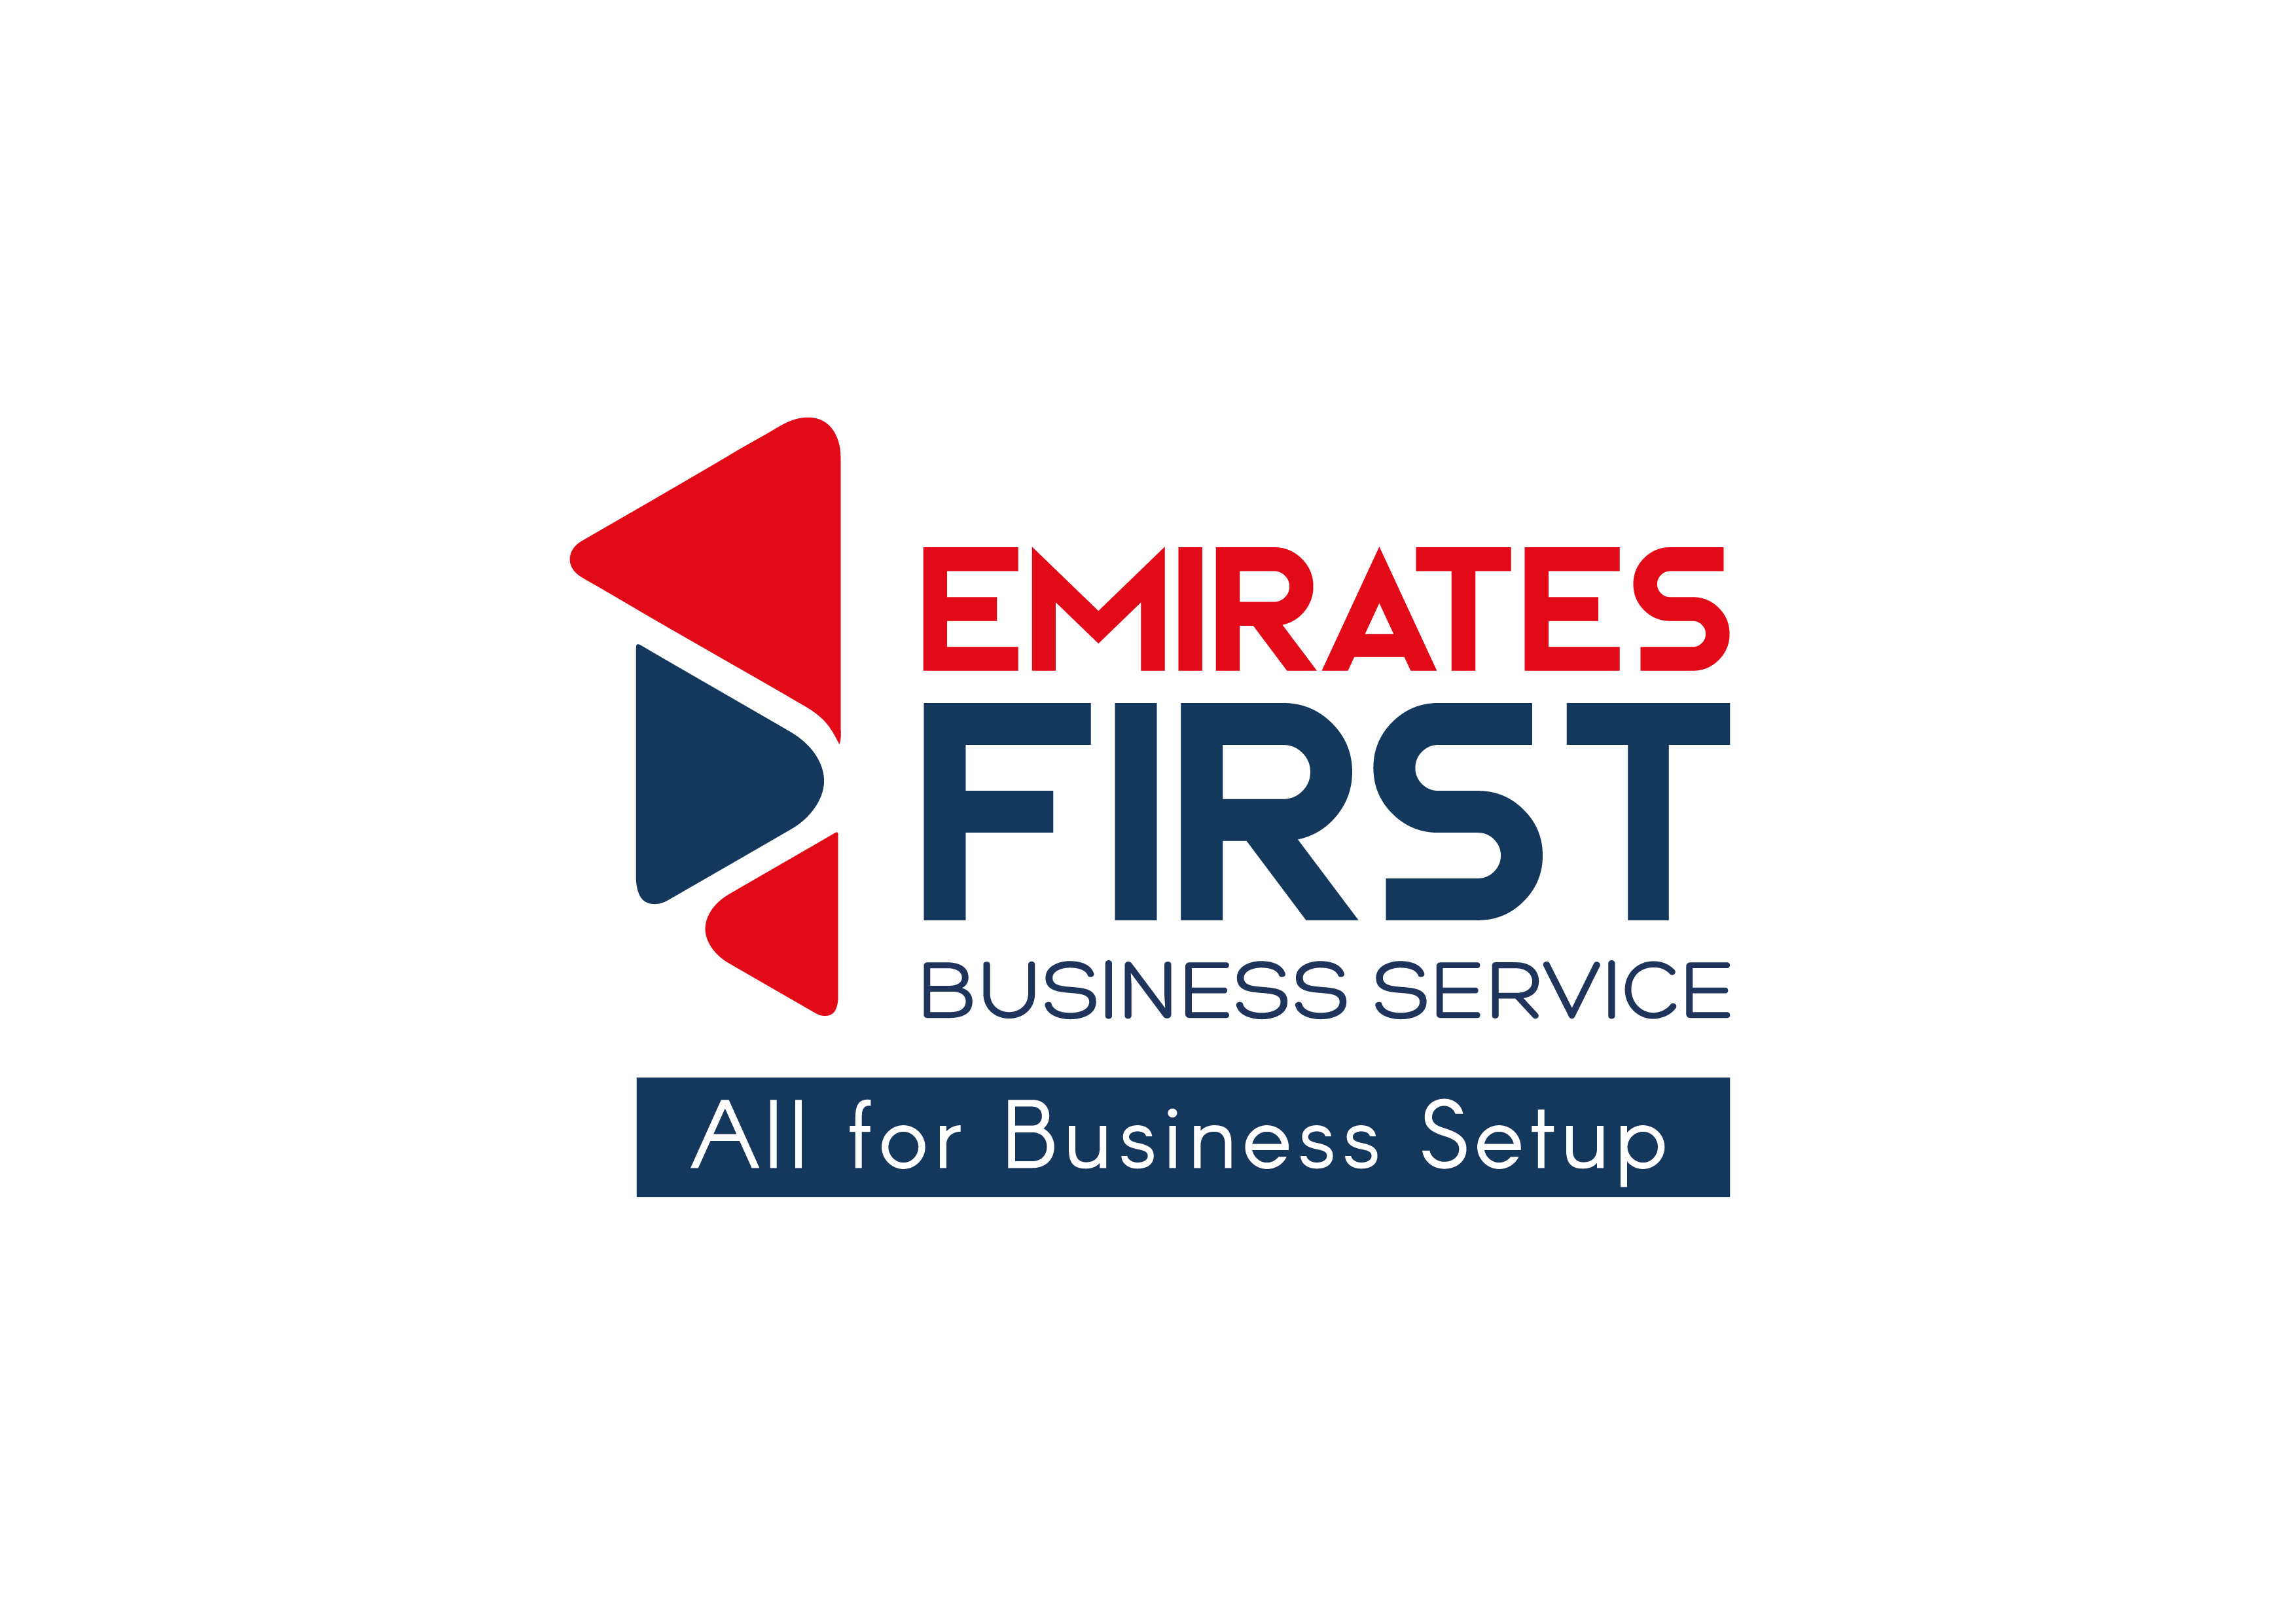 Emirates First Business Service